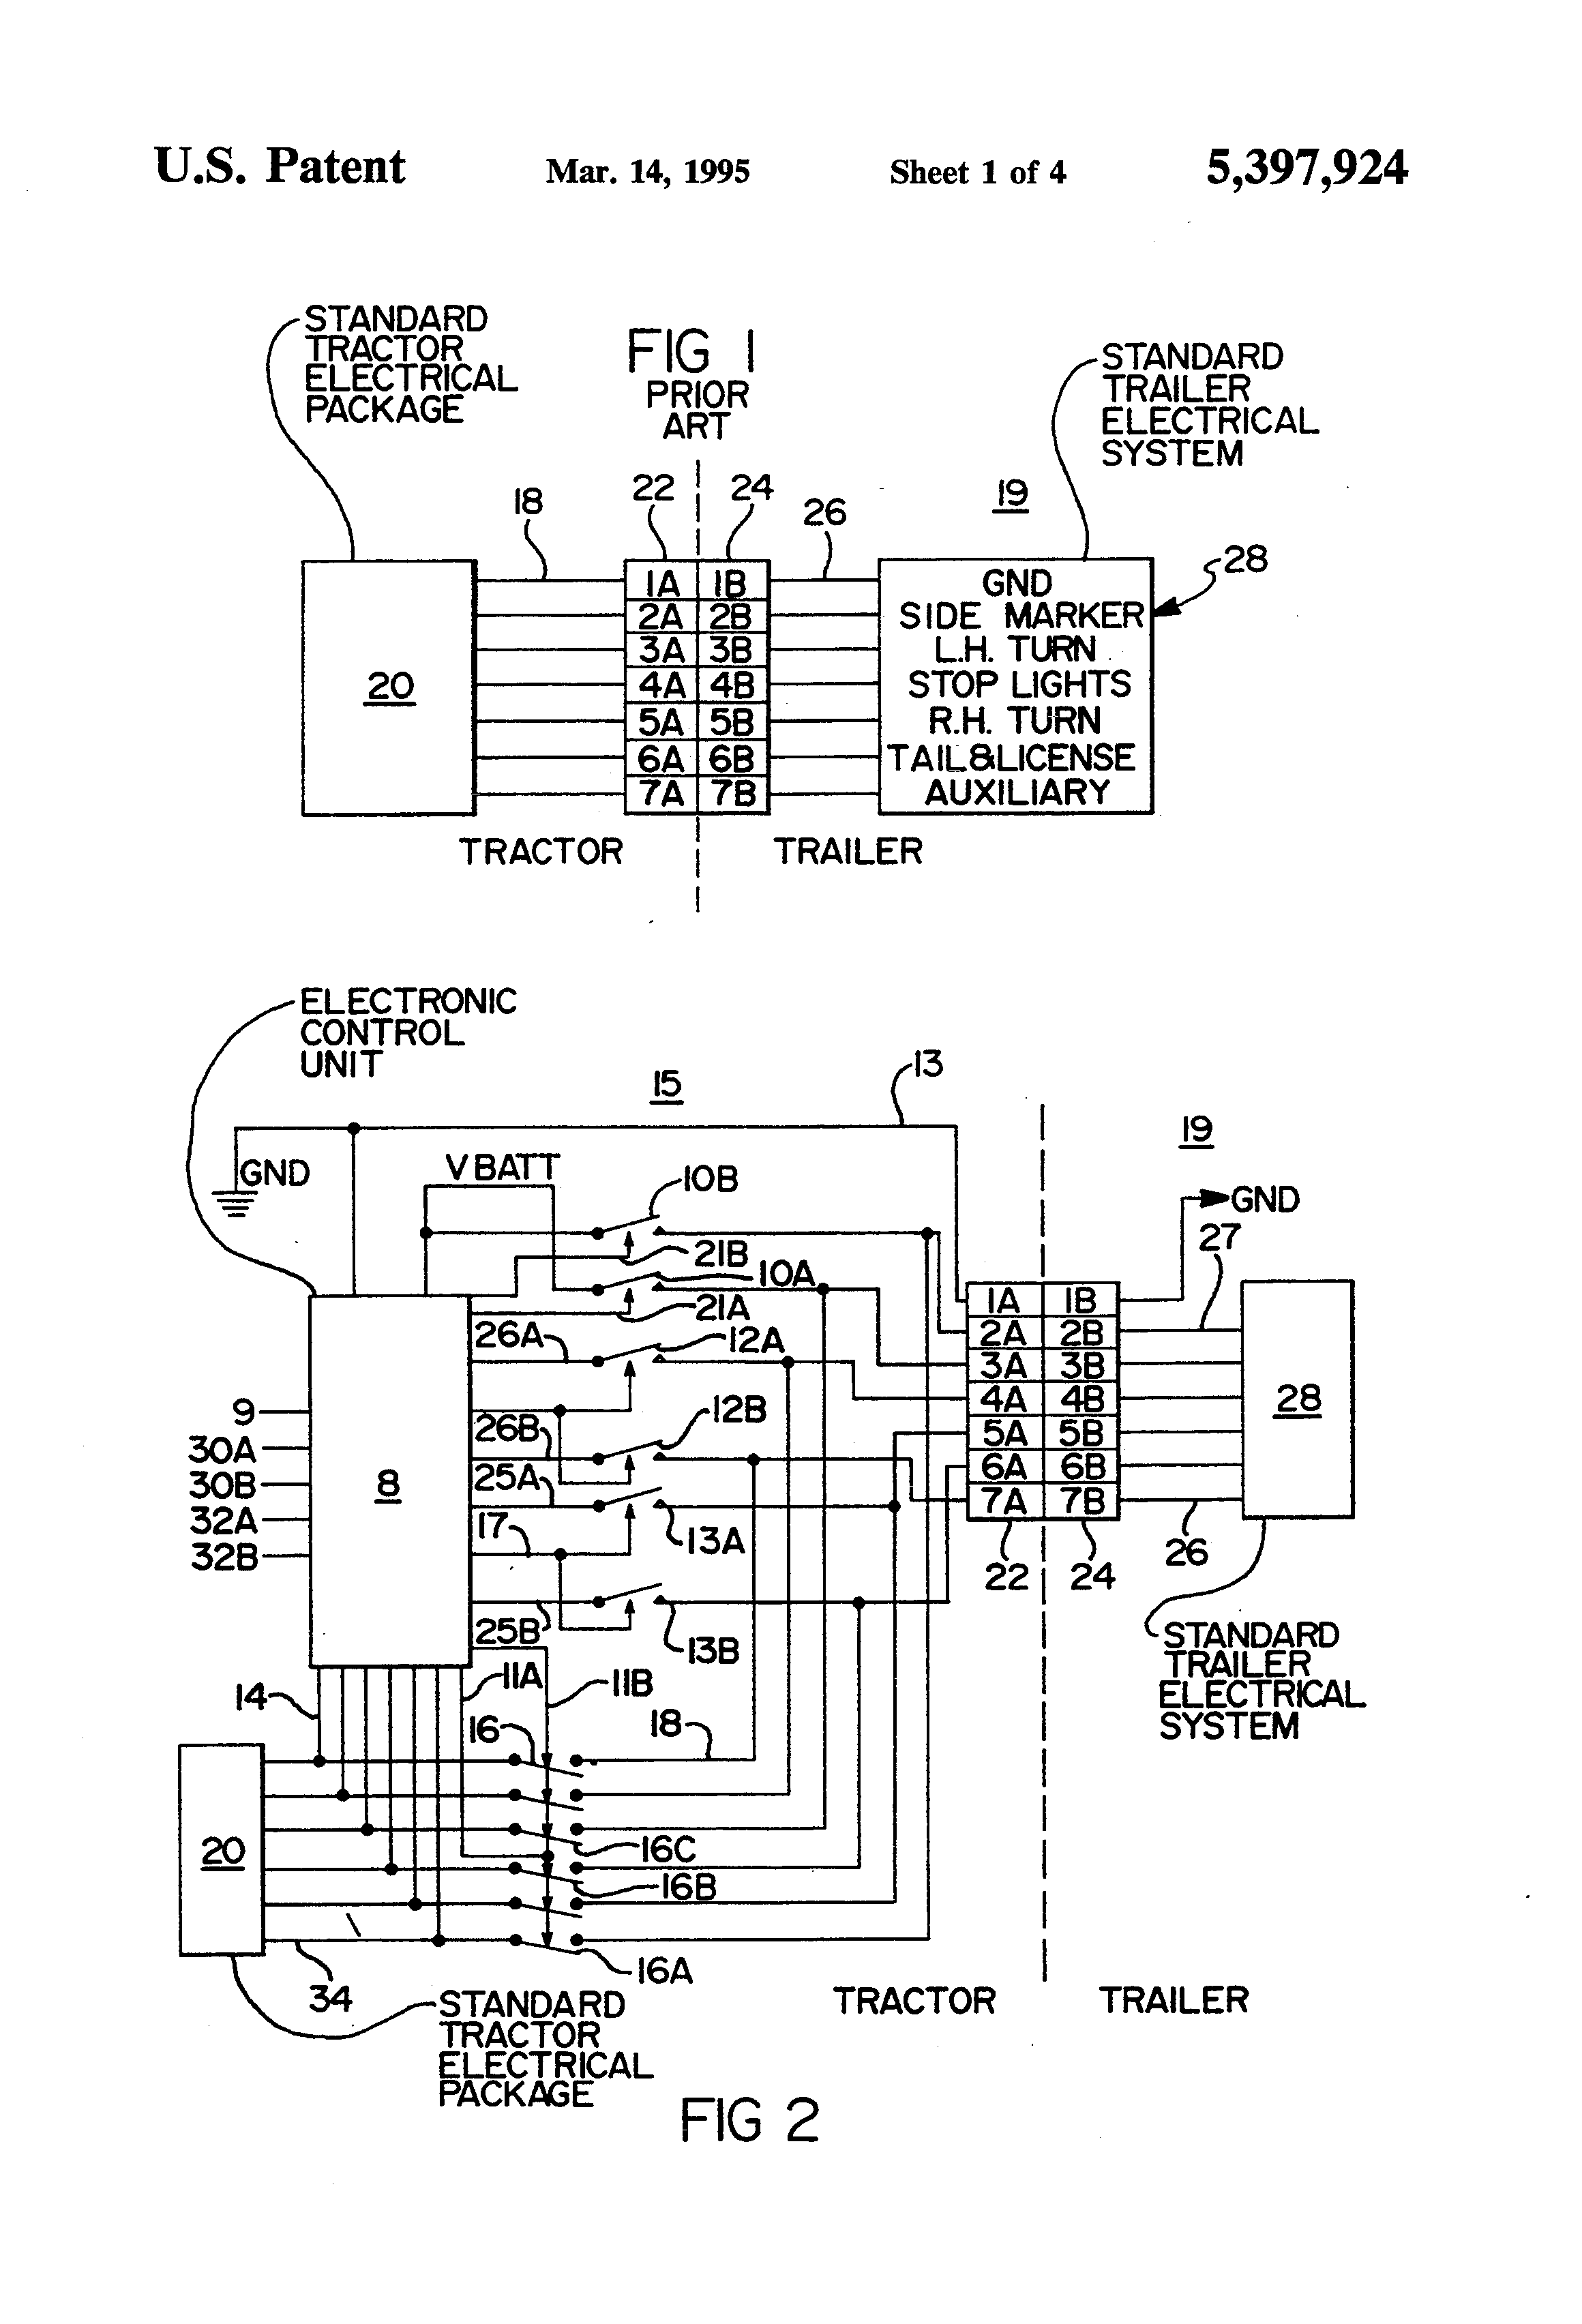 Haldex Air Brake System Diagram as well Dodge Dakota Abs Wiring Diagrams in addition Vauxhall  bo Wiring Diagram Pdf in addition 3 Way Pneumatic Valve Schematic besides rsteer. on bendix trailer abs wiring diagram